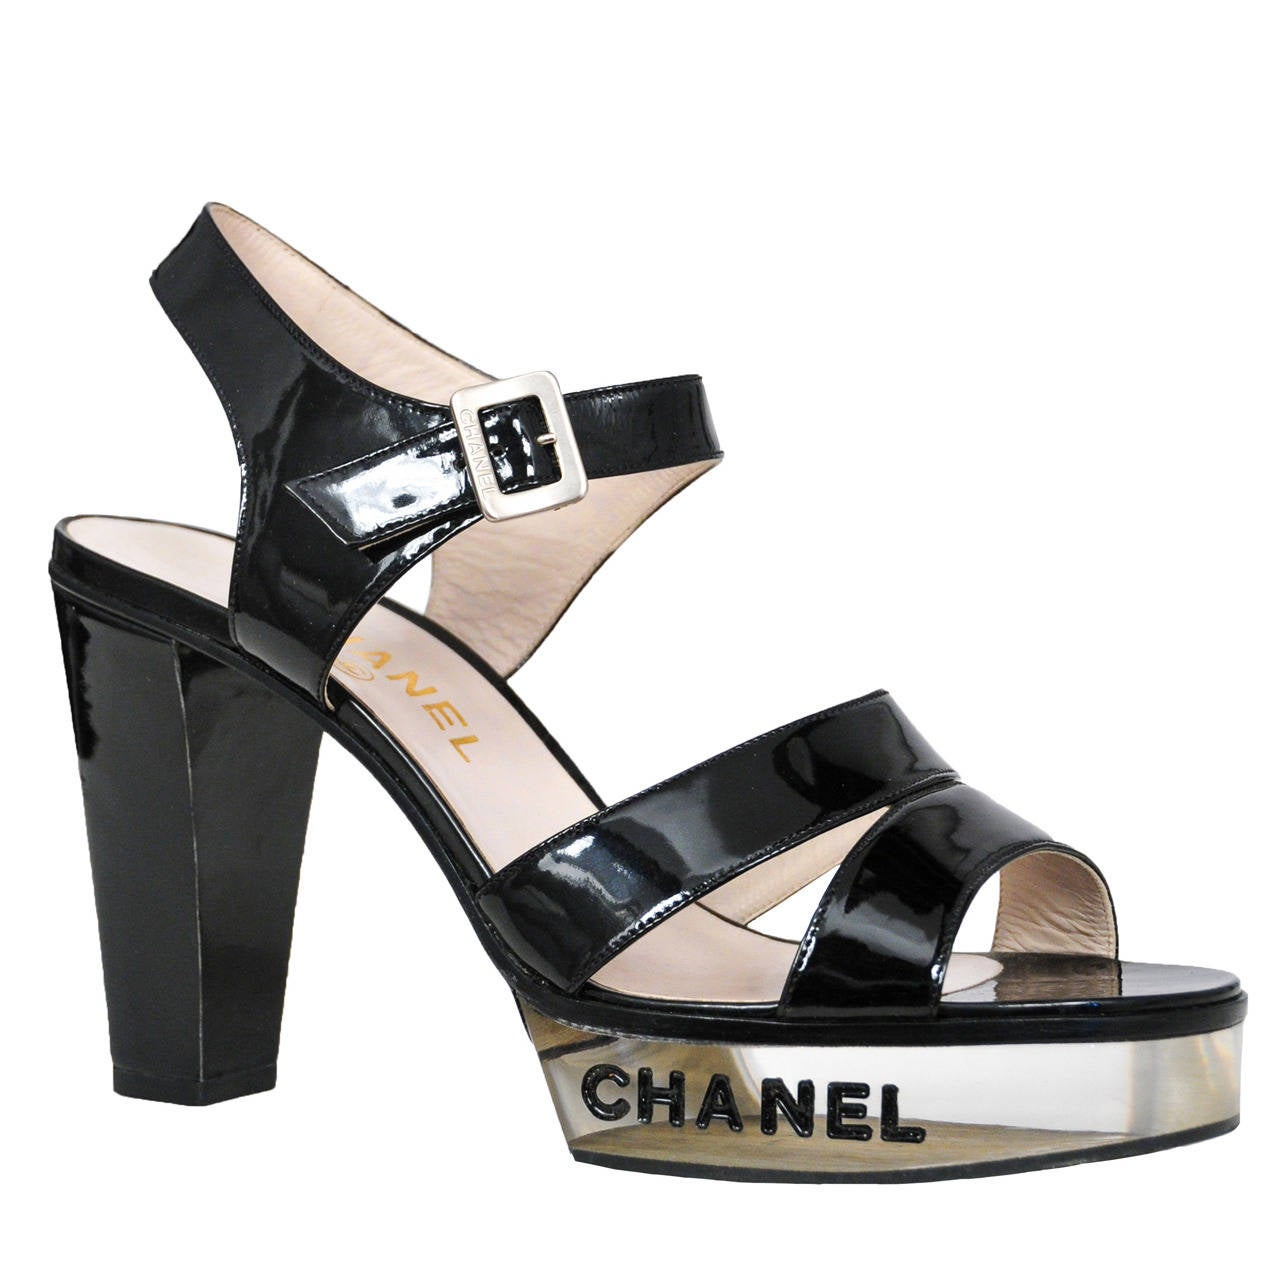 Chanel Lucite Platforms For Sale